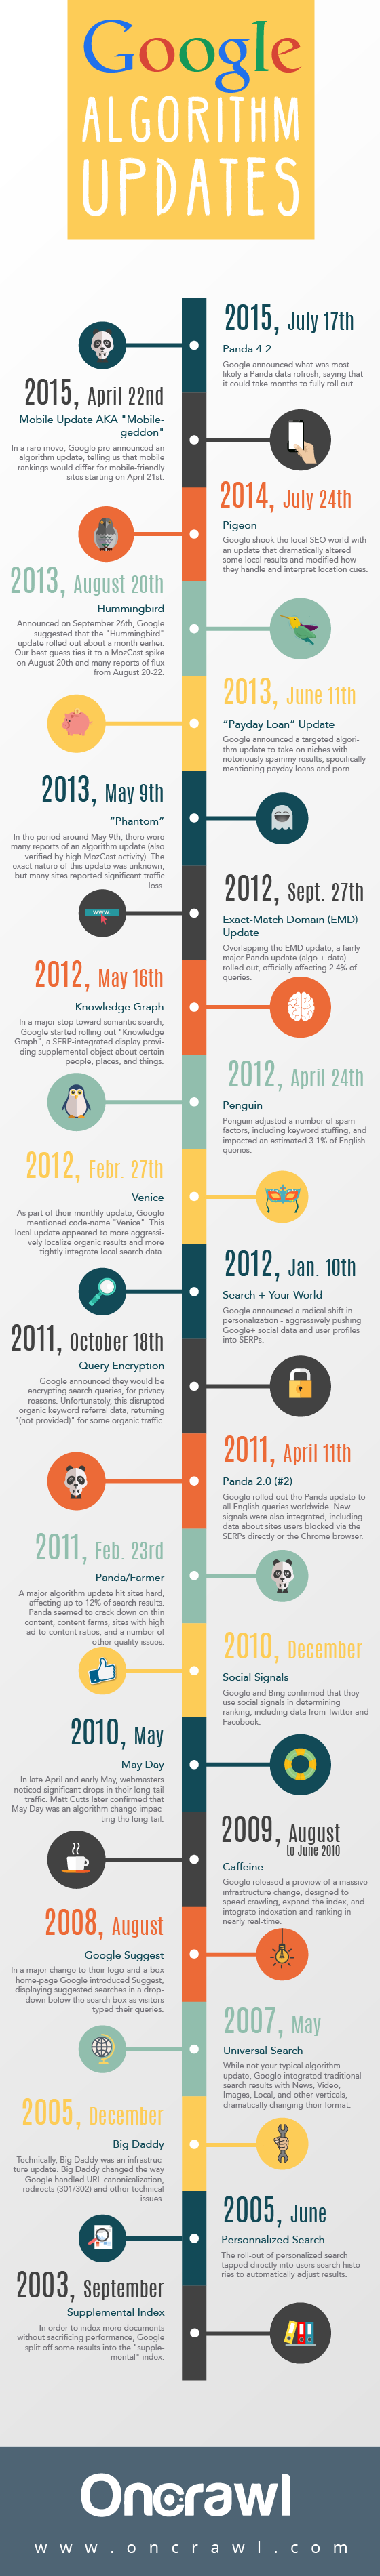 Google Algorithm Updates - 2003 to 2015 #Infographic